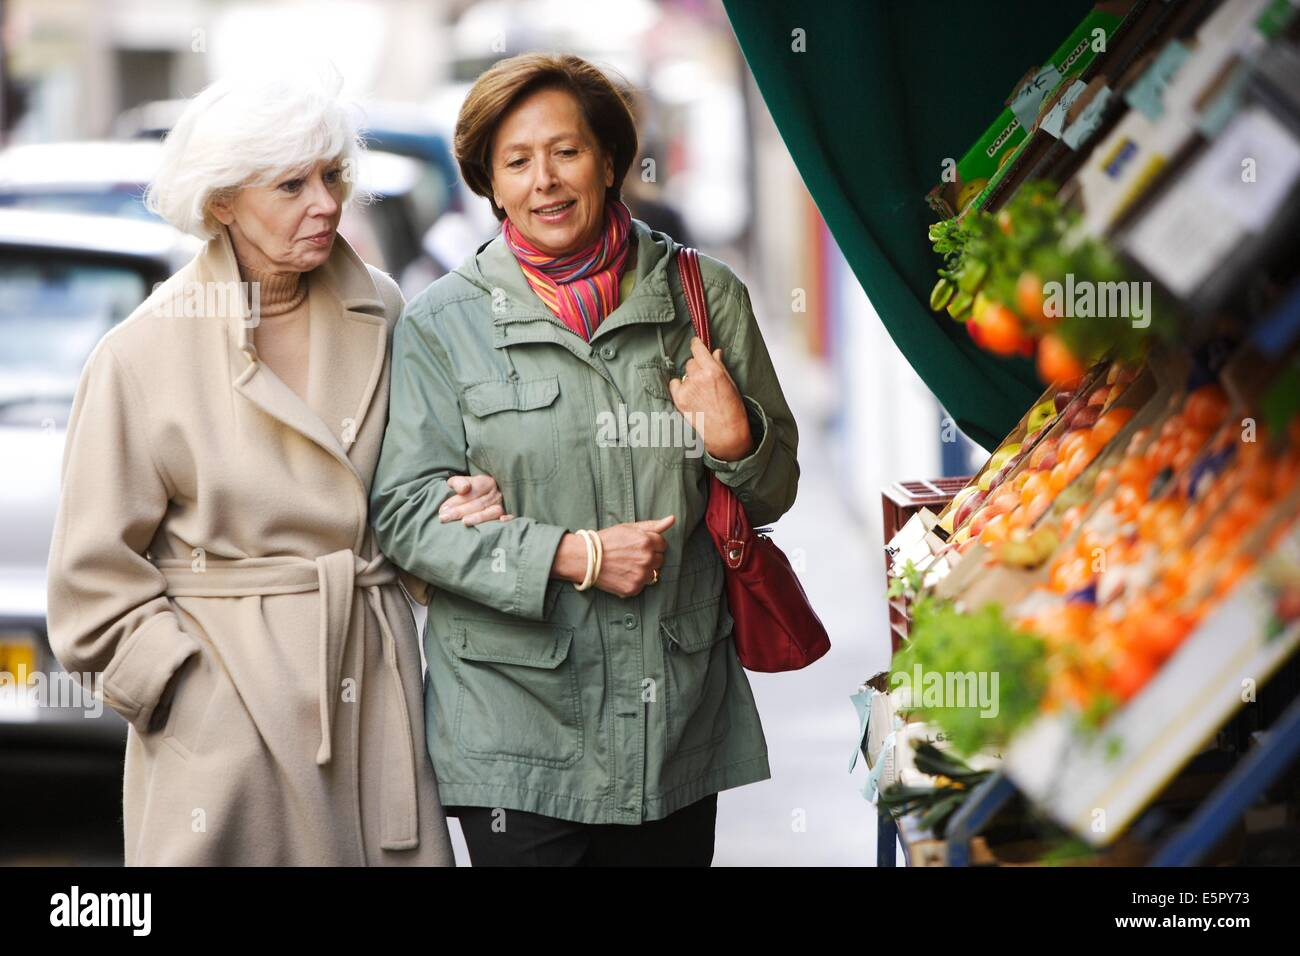 Woman and elderly woman walking in the street. - Stock Image